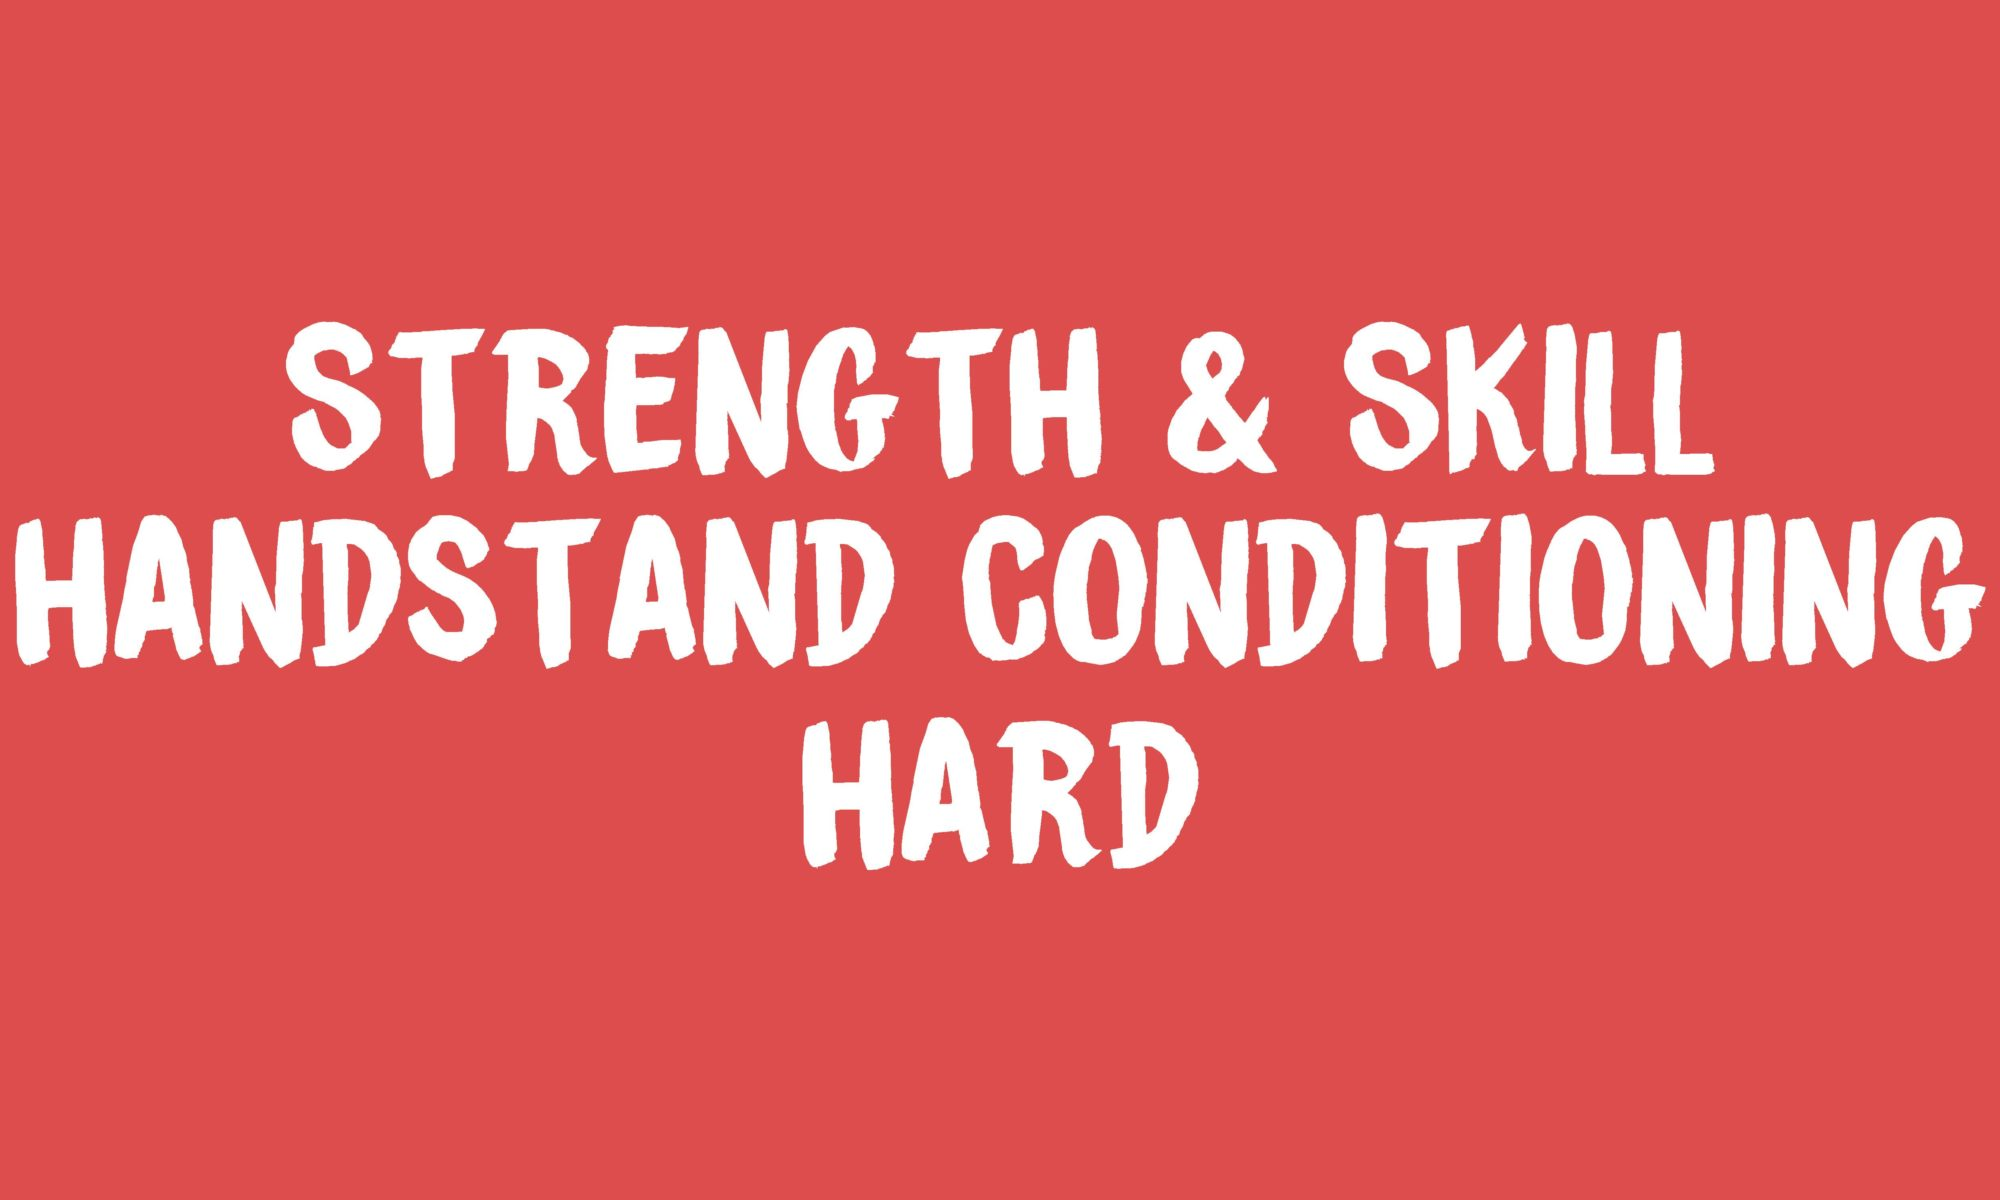 Strength & Skill Handstand Conditioning Banner